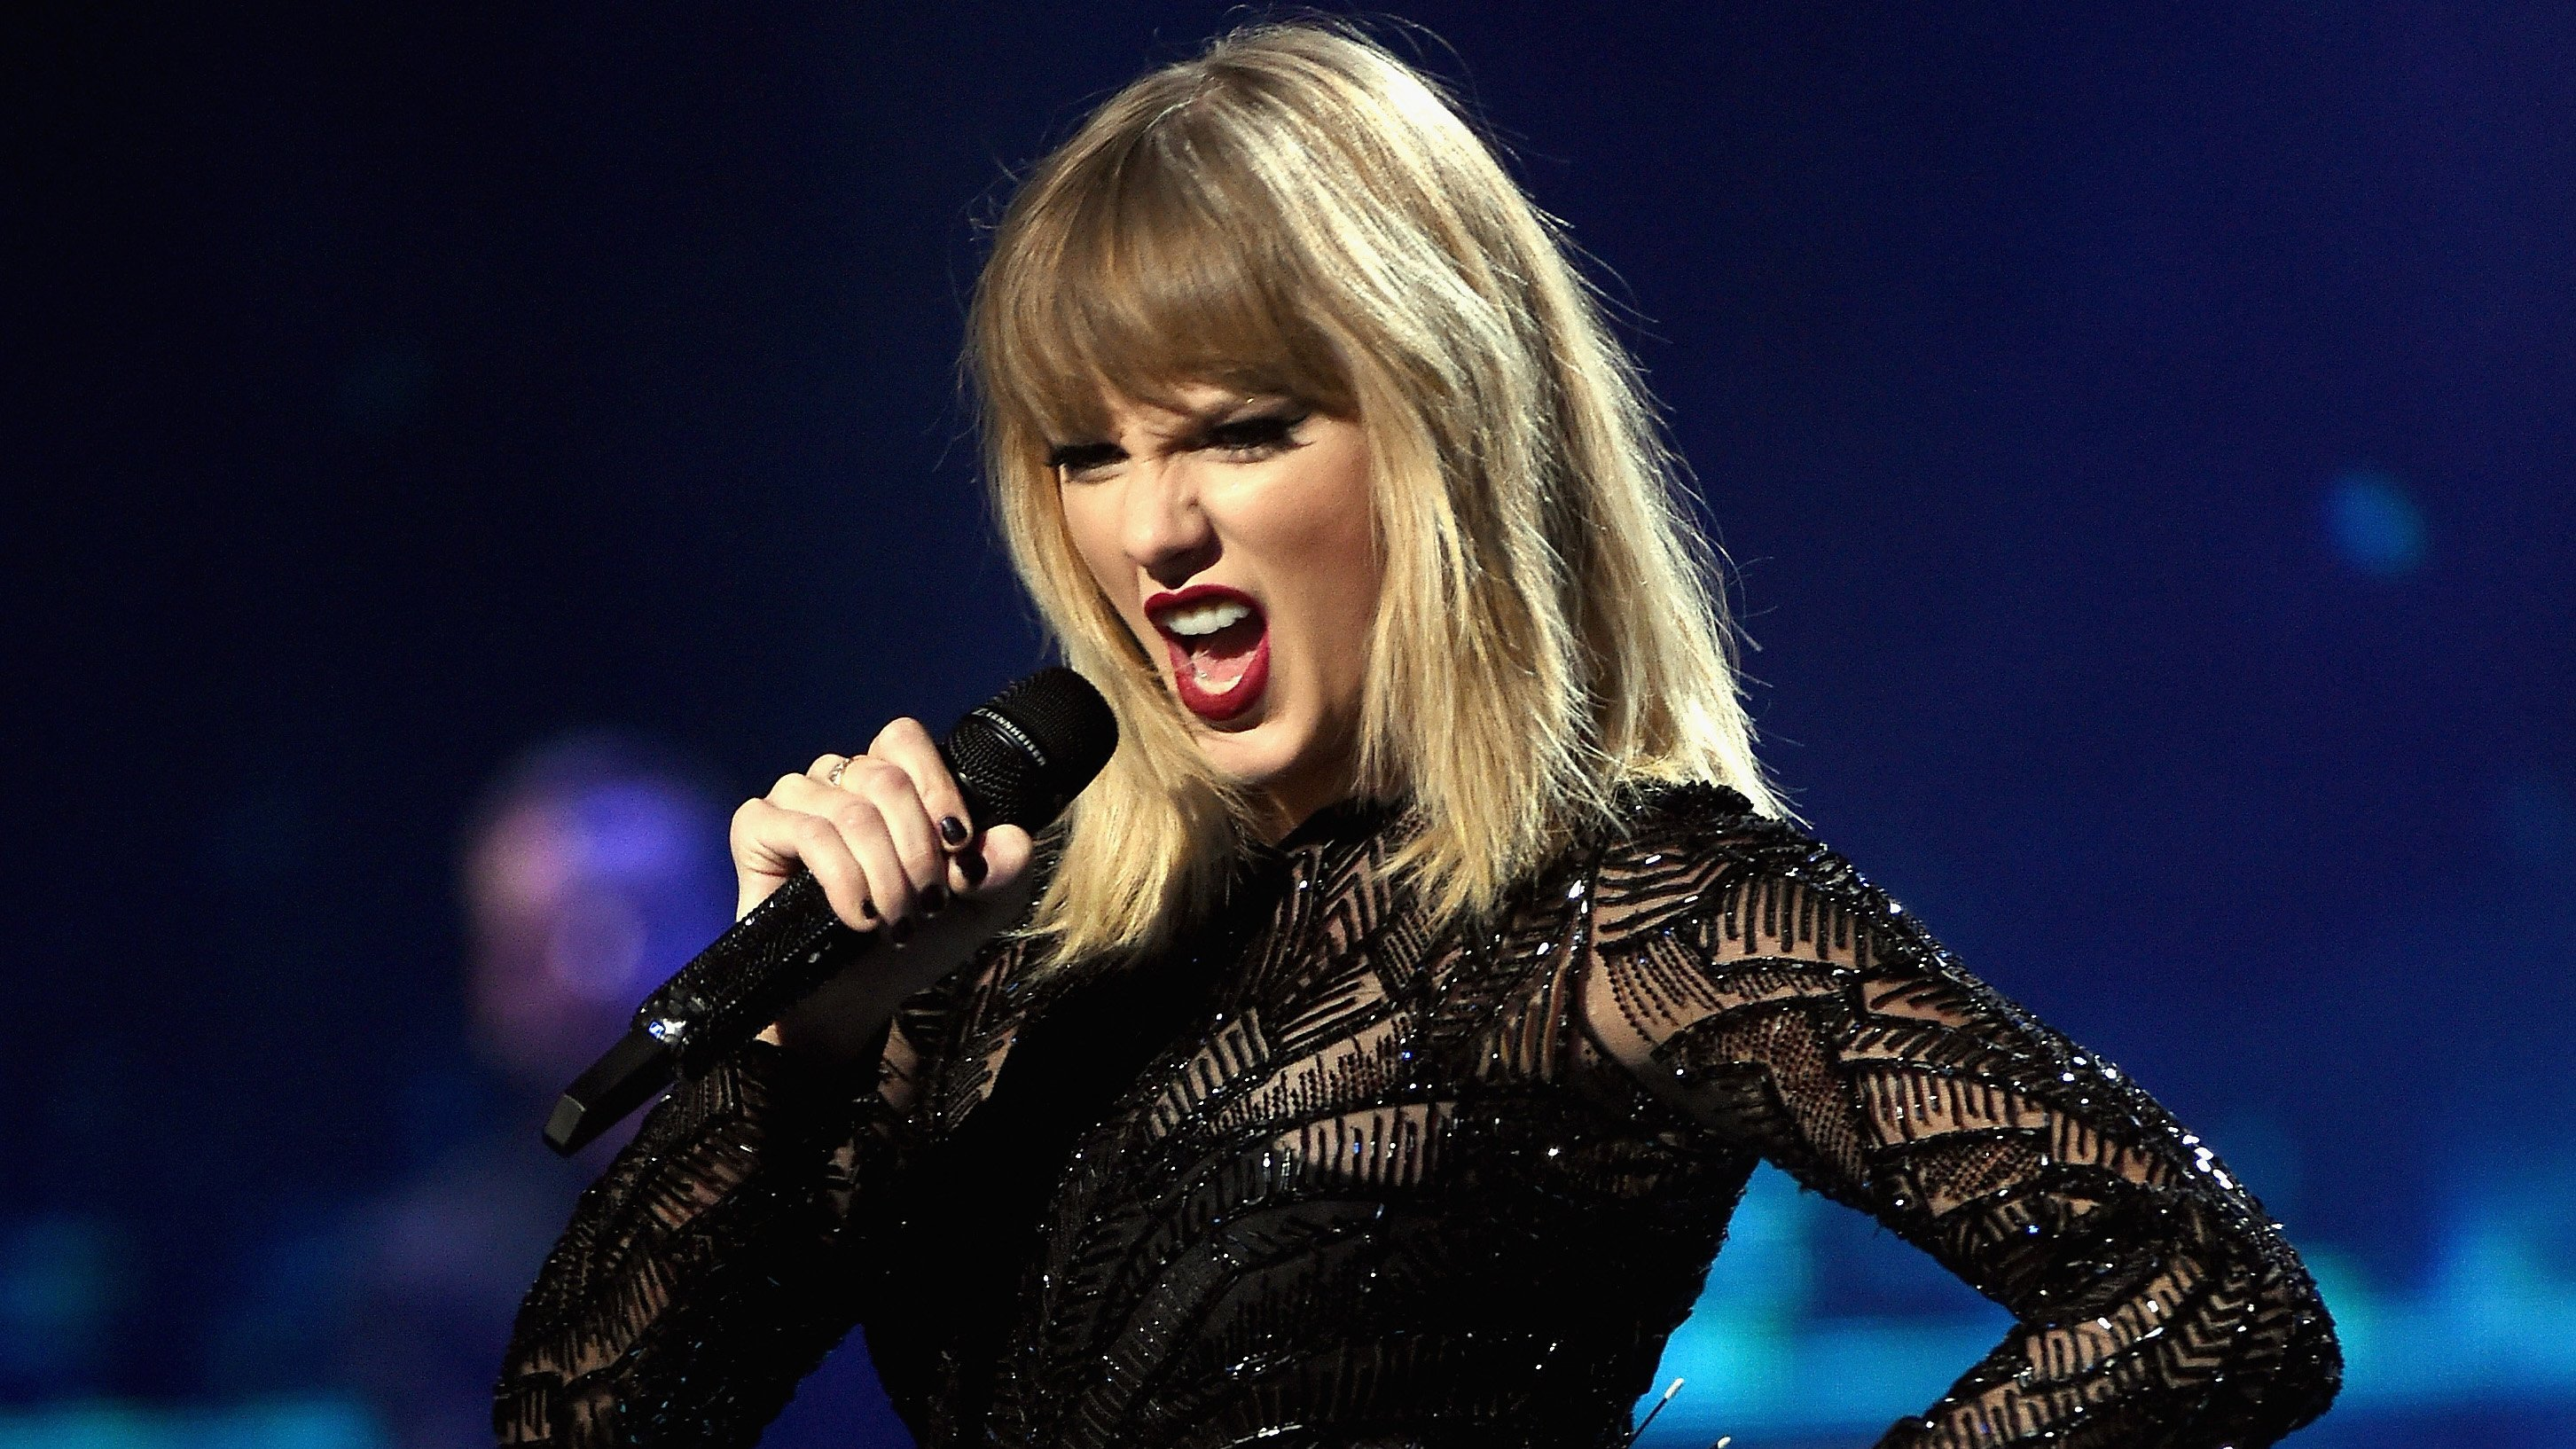 Taylor Swift announces 2020 tour with only 2 US stops